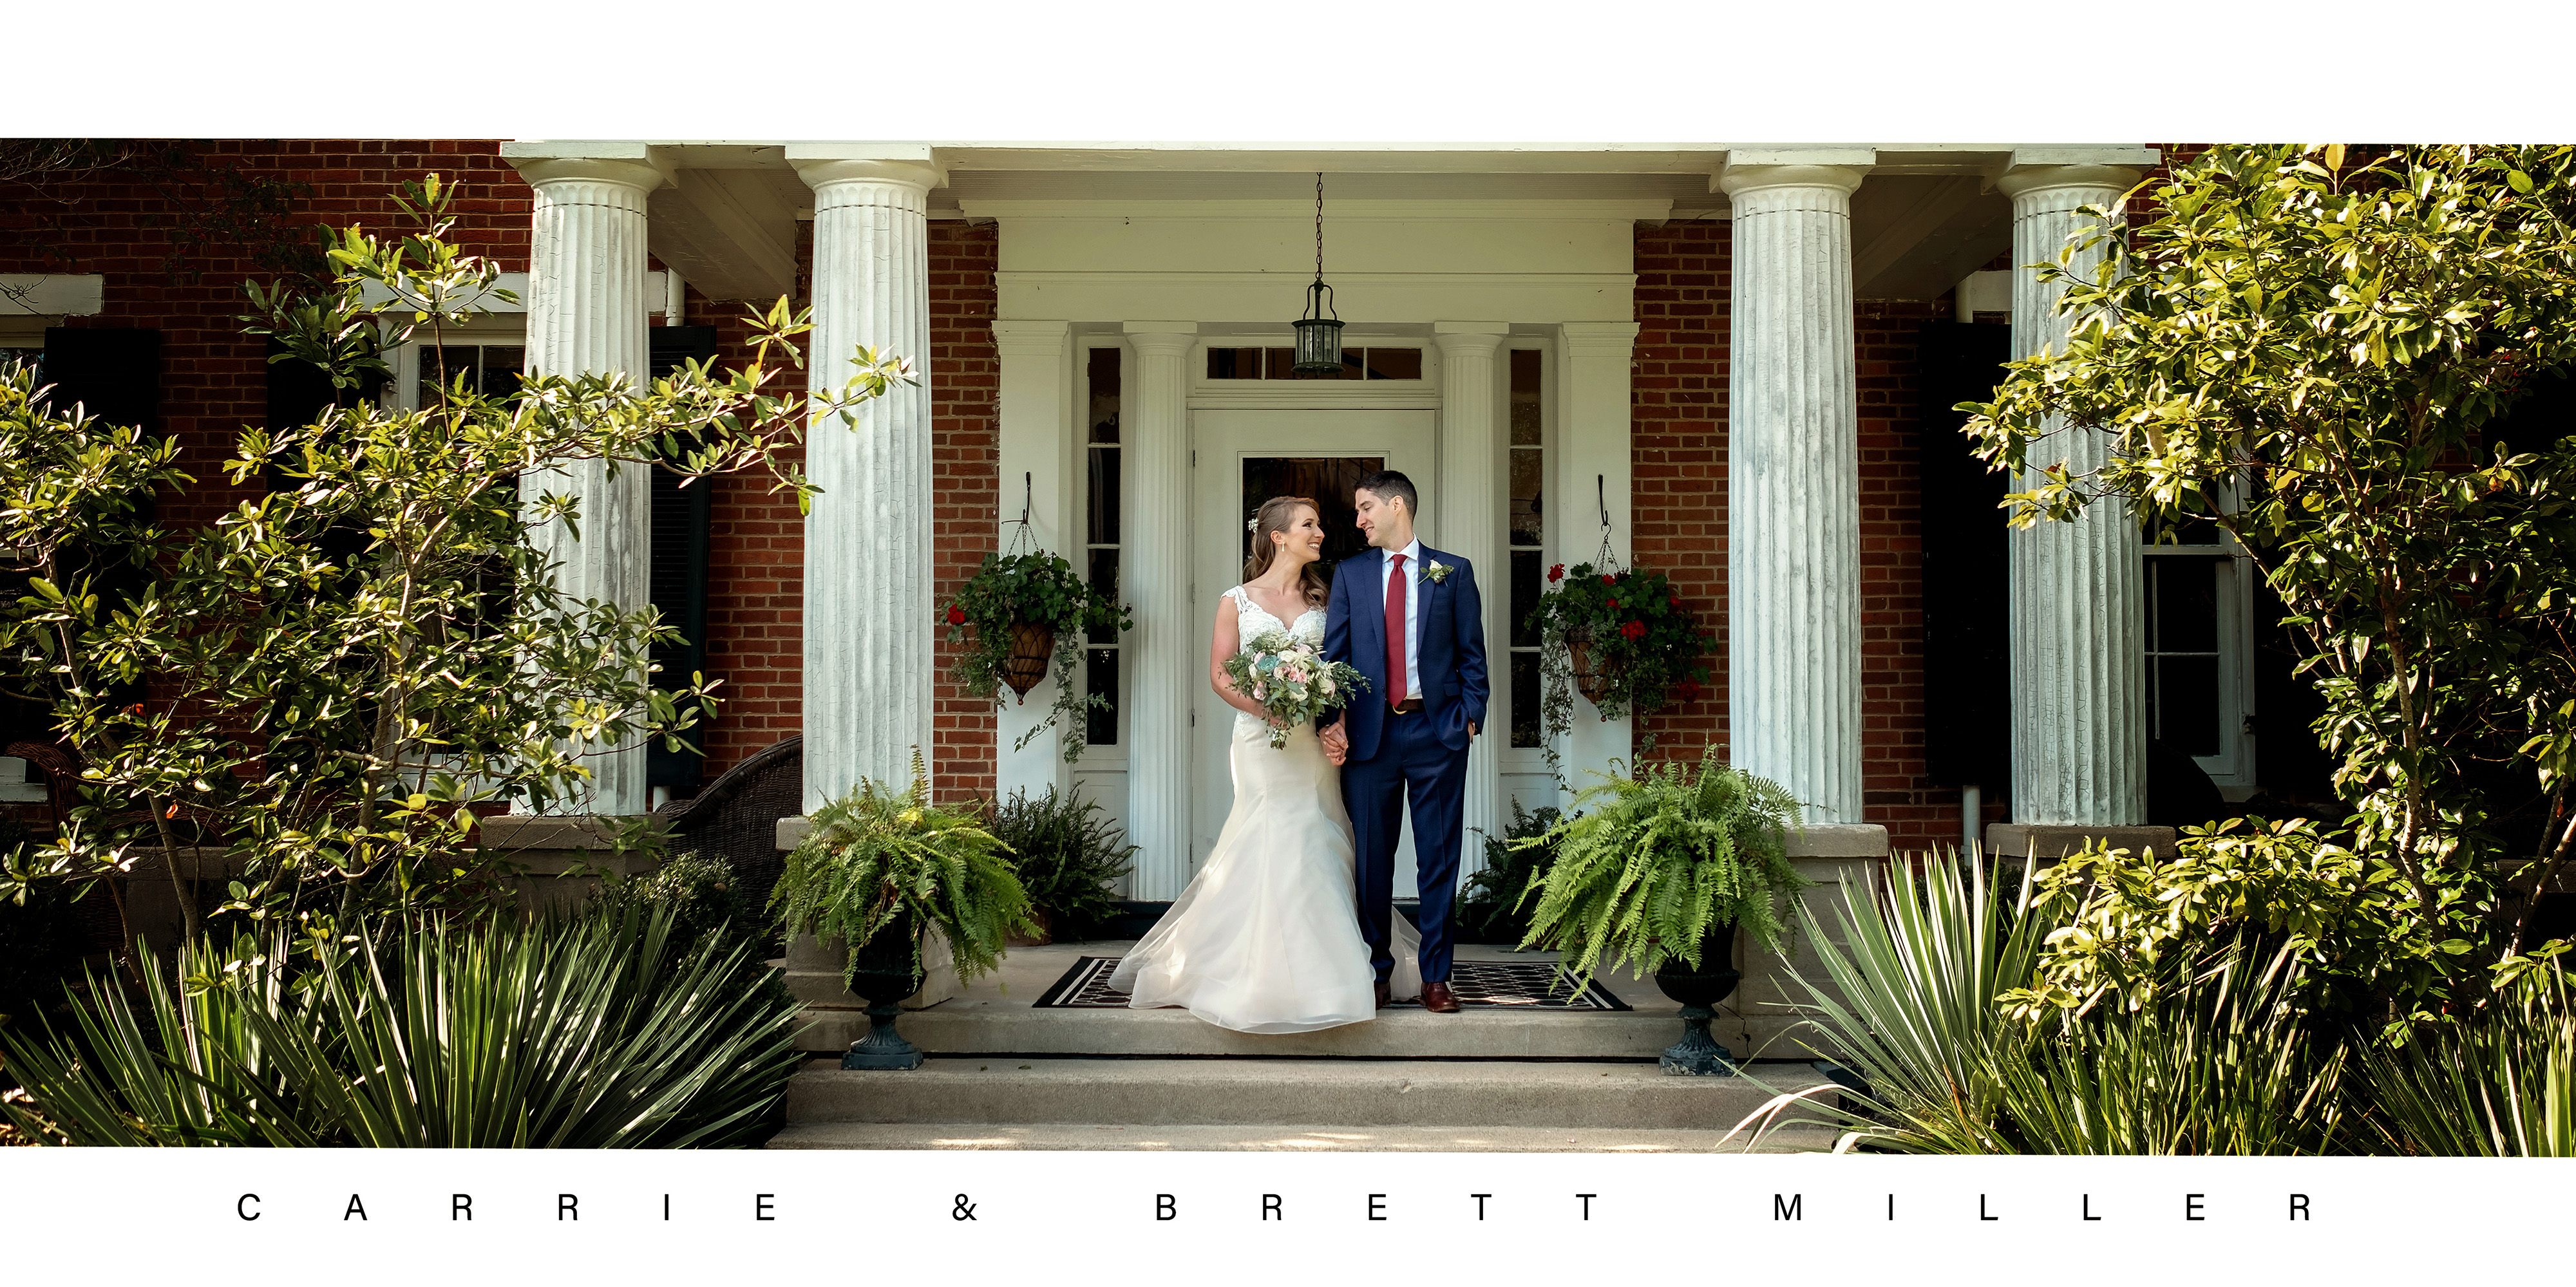 Mr. & Mrs. Miller | Ashley Inn | Kentucky Wedding Photographer